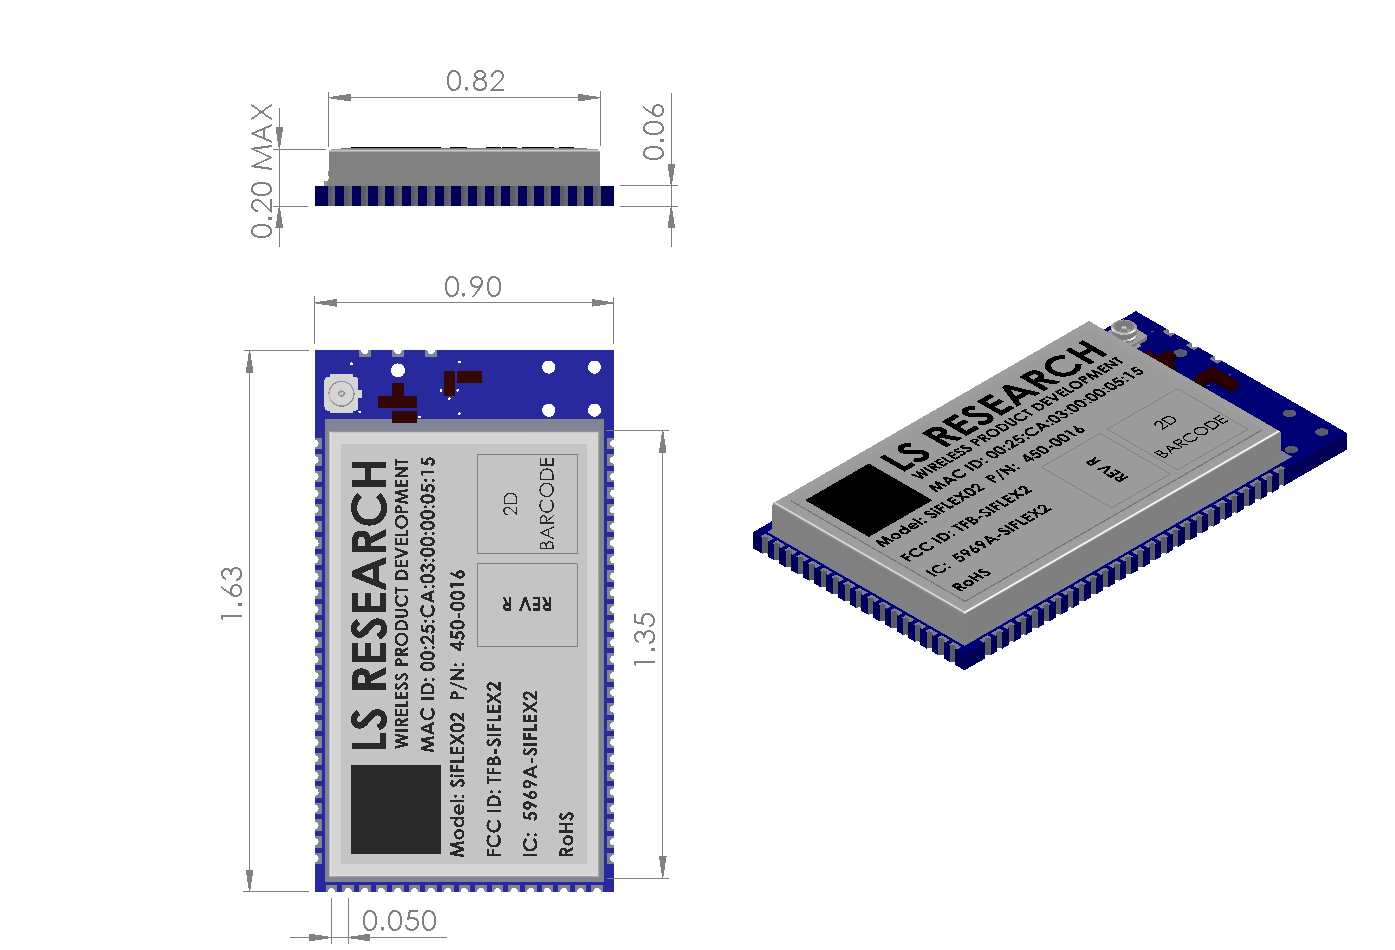 hight resolution of integrated transceiver modules for zigbee 900 mhz development sample circuit diagram for siflex02 zigbee module